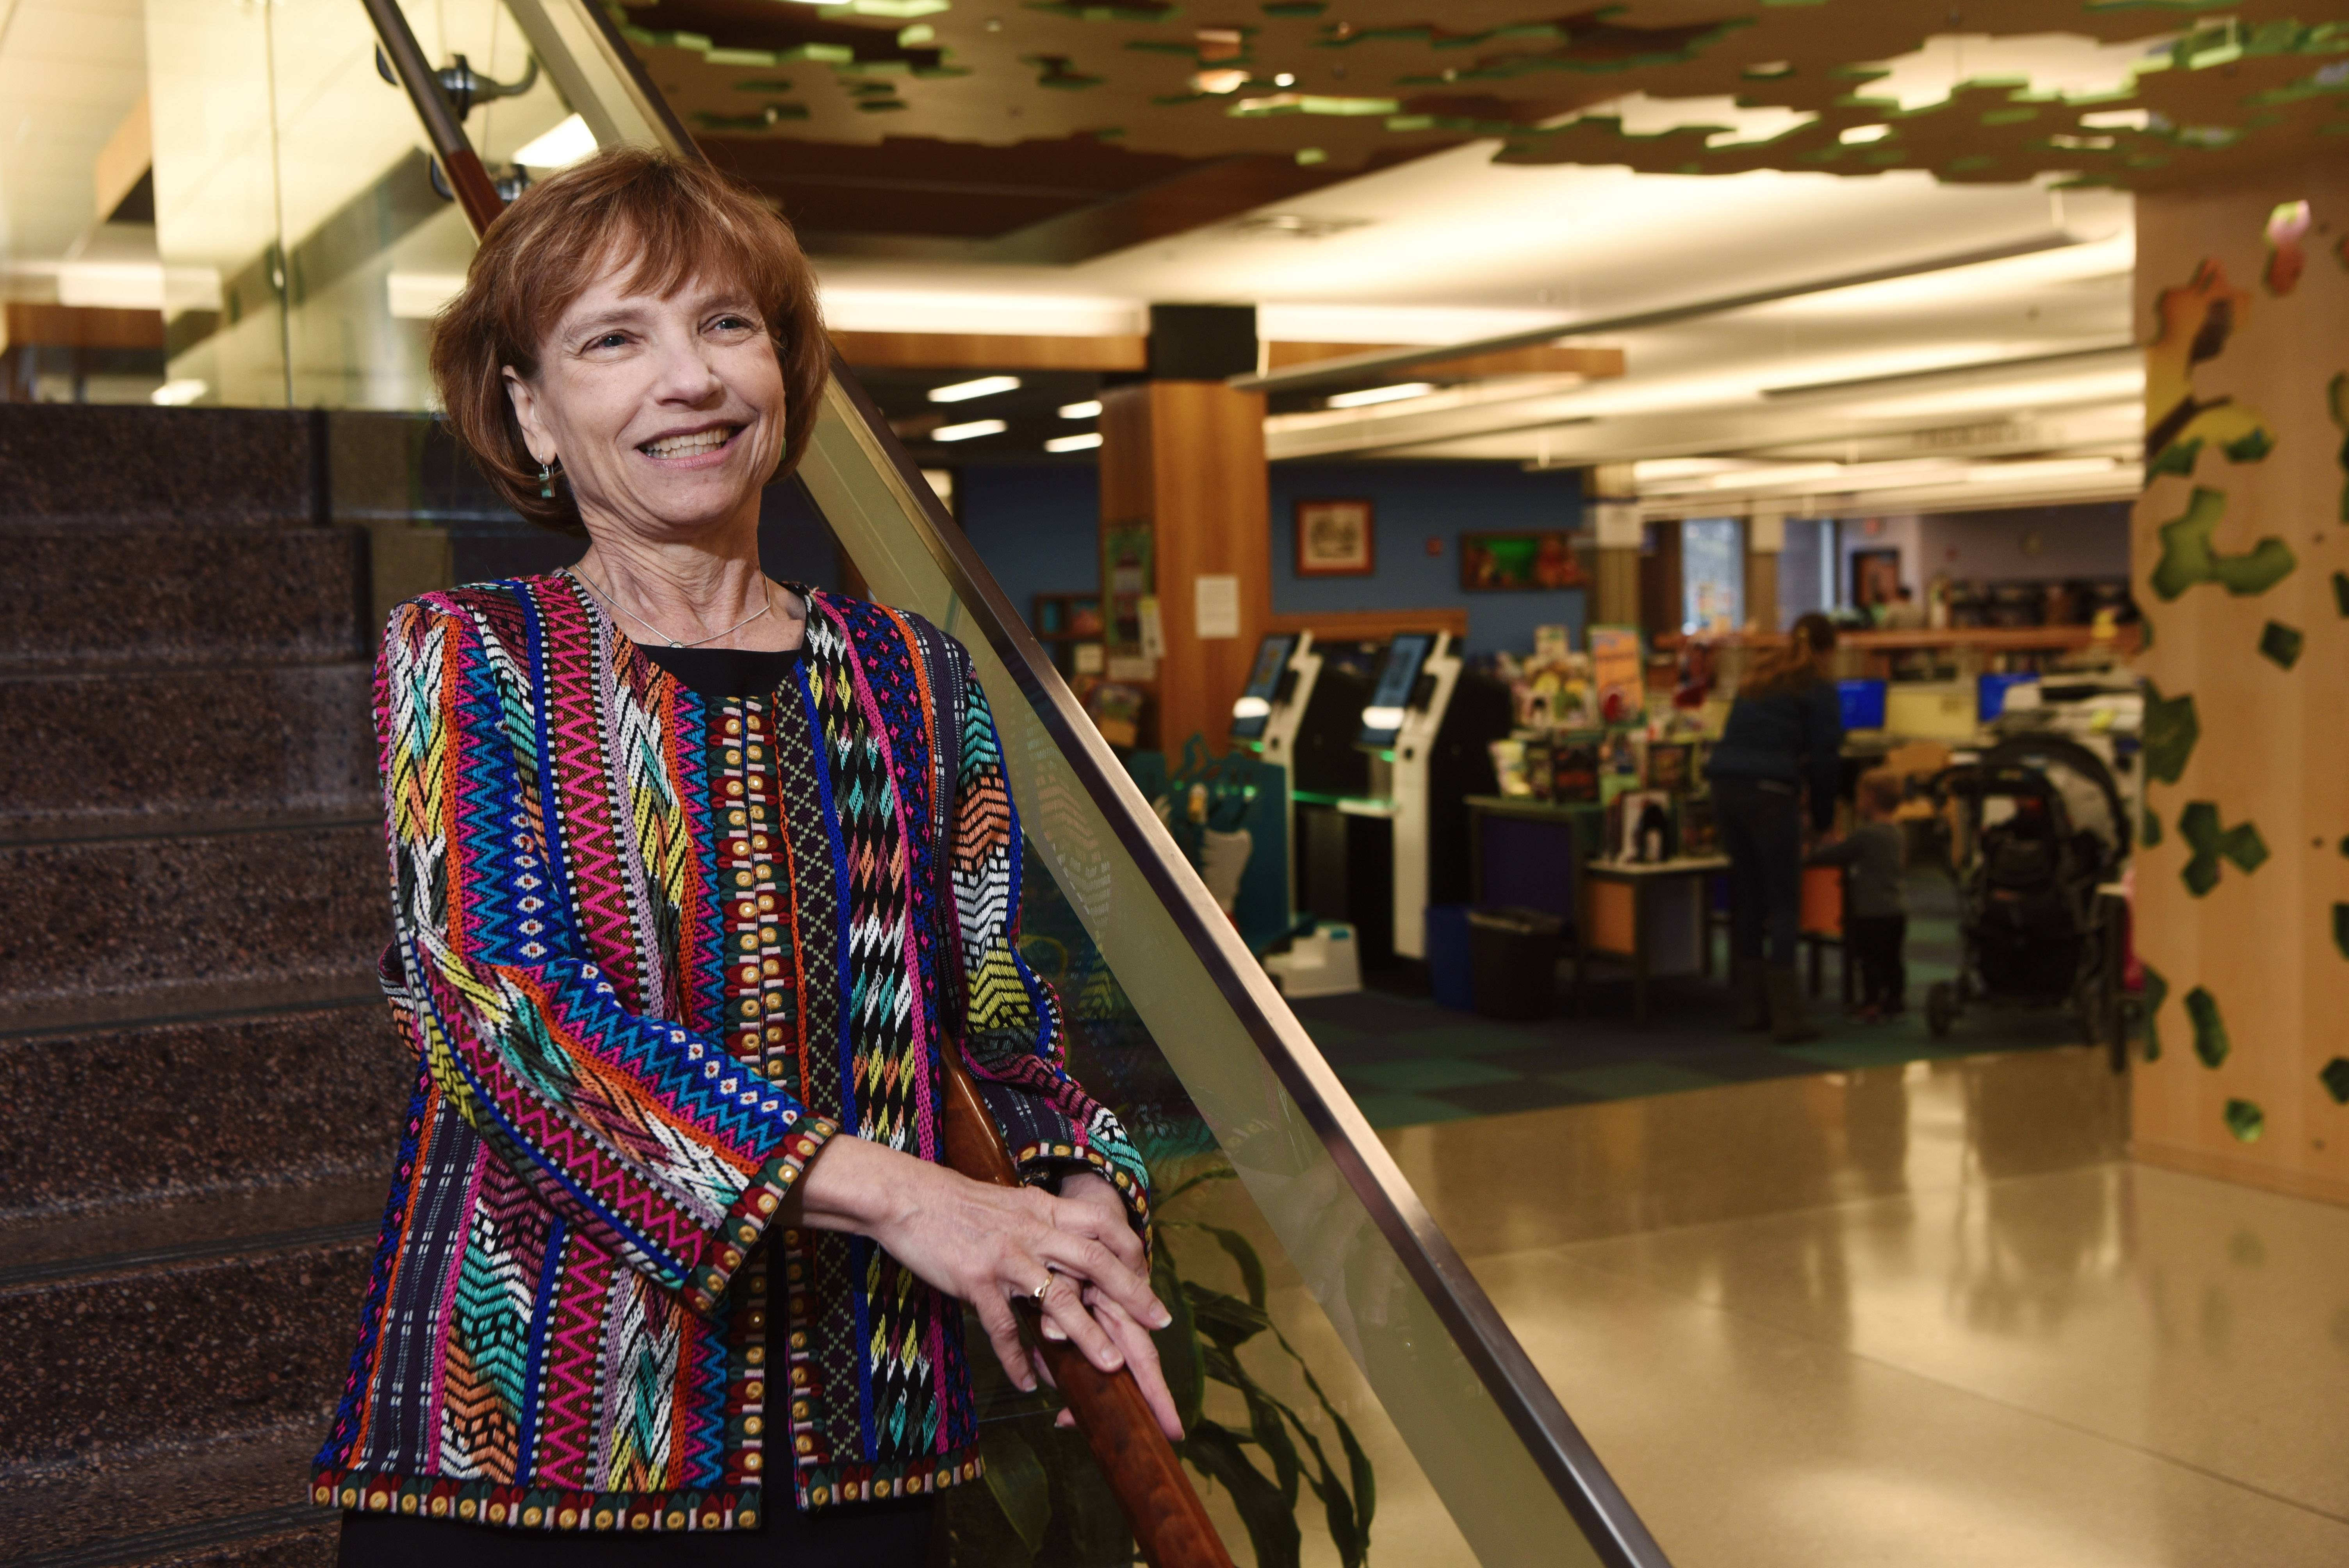 Marilyn Genther is stepping down in June after about 27 years as executive director of the Mount Prospect Public Library.